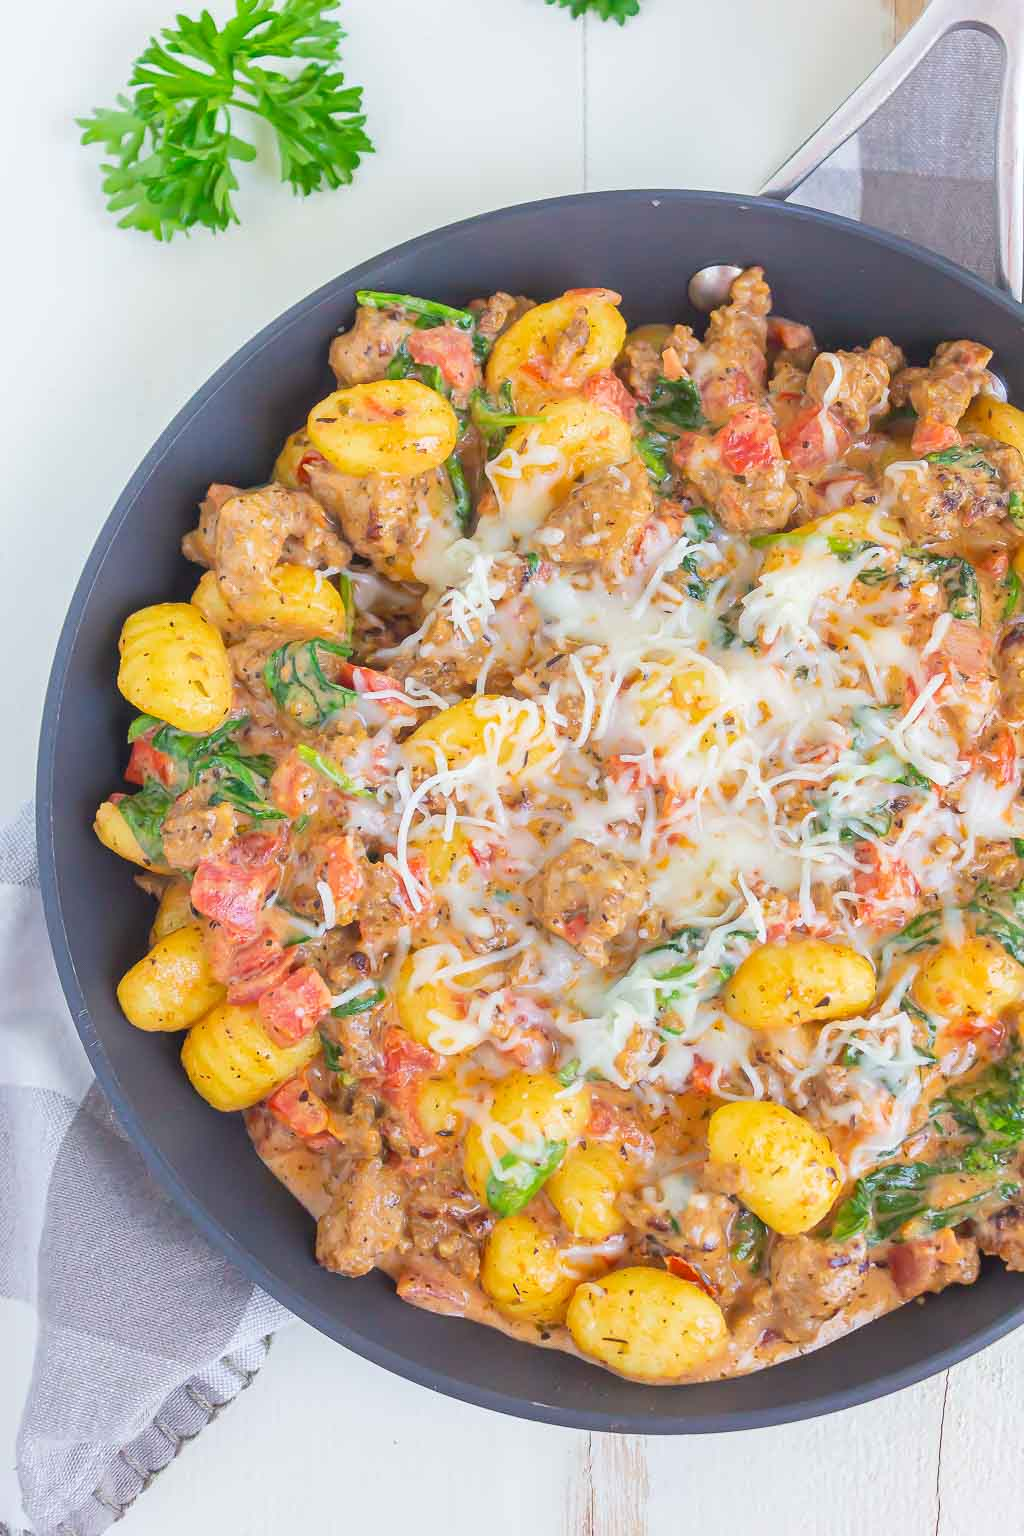 Overhead view of a skillet of Italian sausage gnocchi, topped with shredded mozzarella cheese.